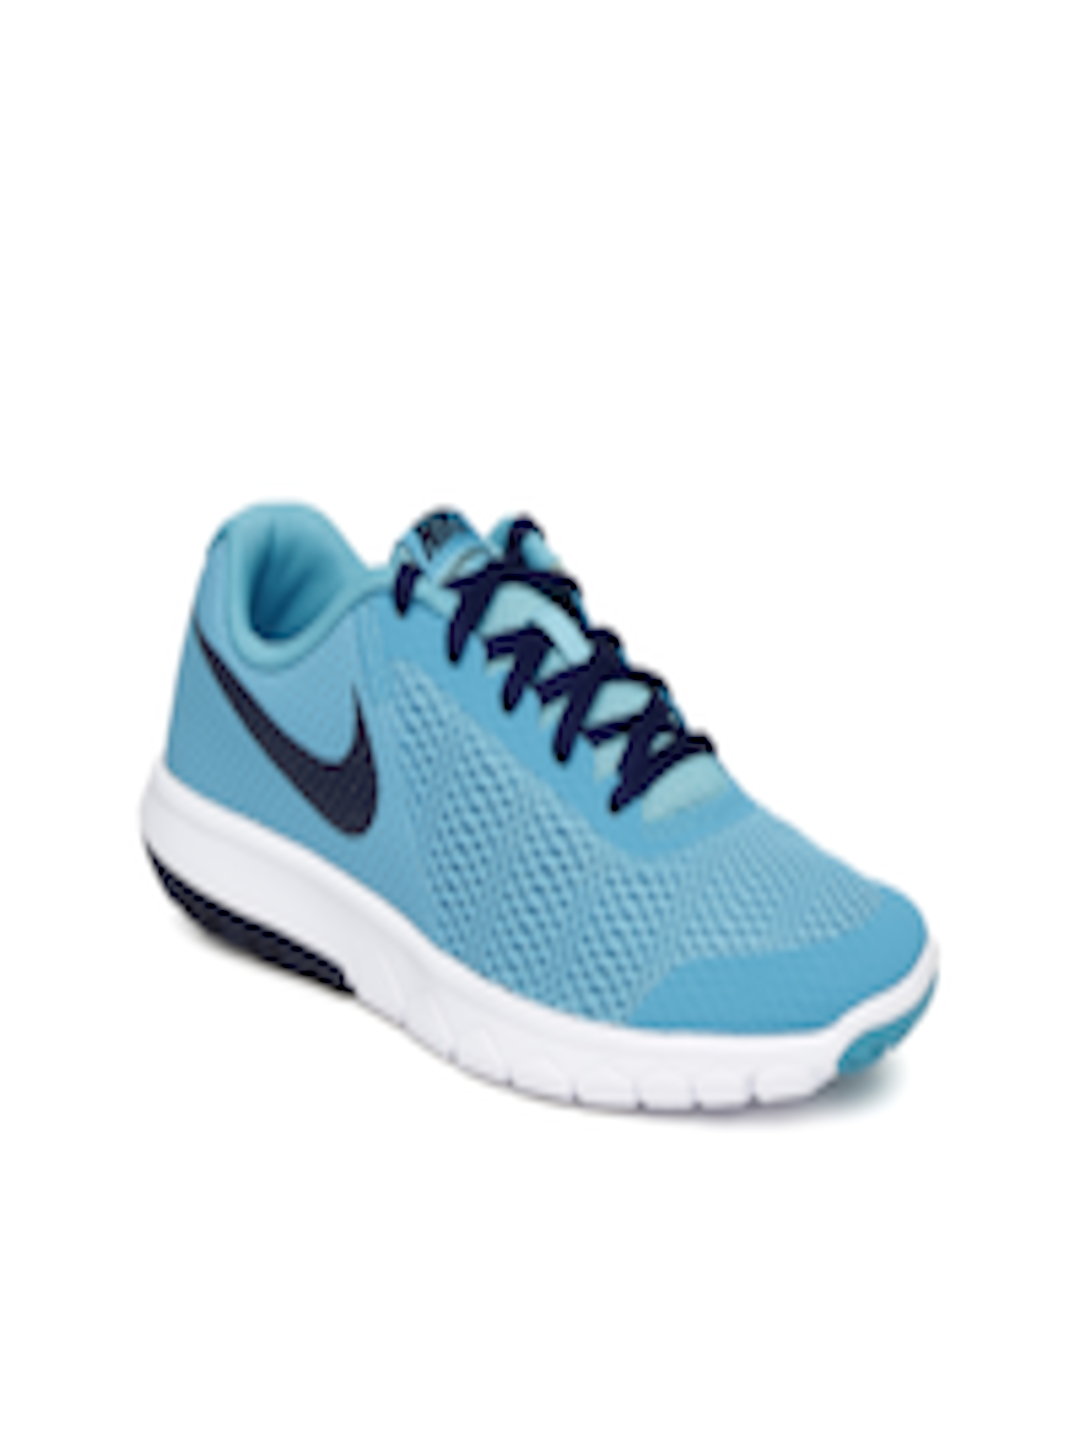 timeless design fc157 5d4a1 Buy Nike Boys Blue Nike Flex Experience 5 GS Running Shoes - Sports Shoes  for Boys 1800905   Myntra